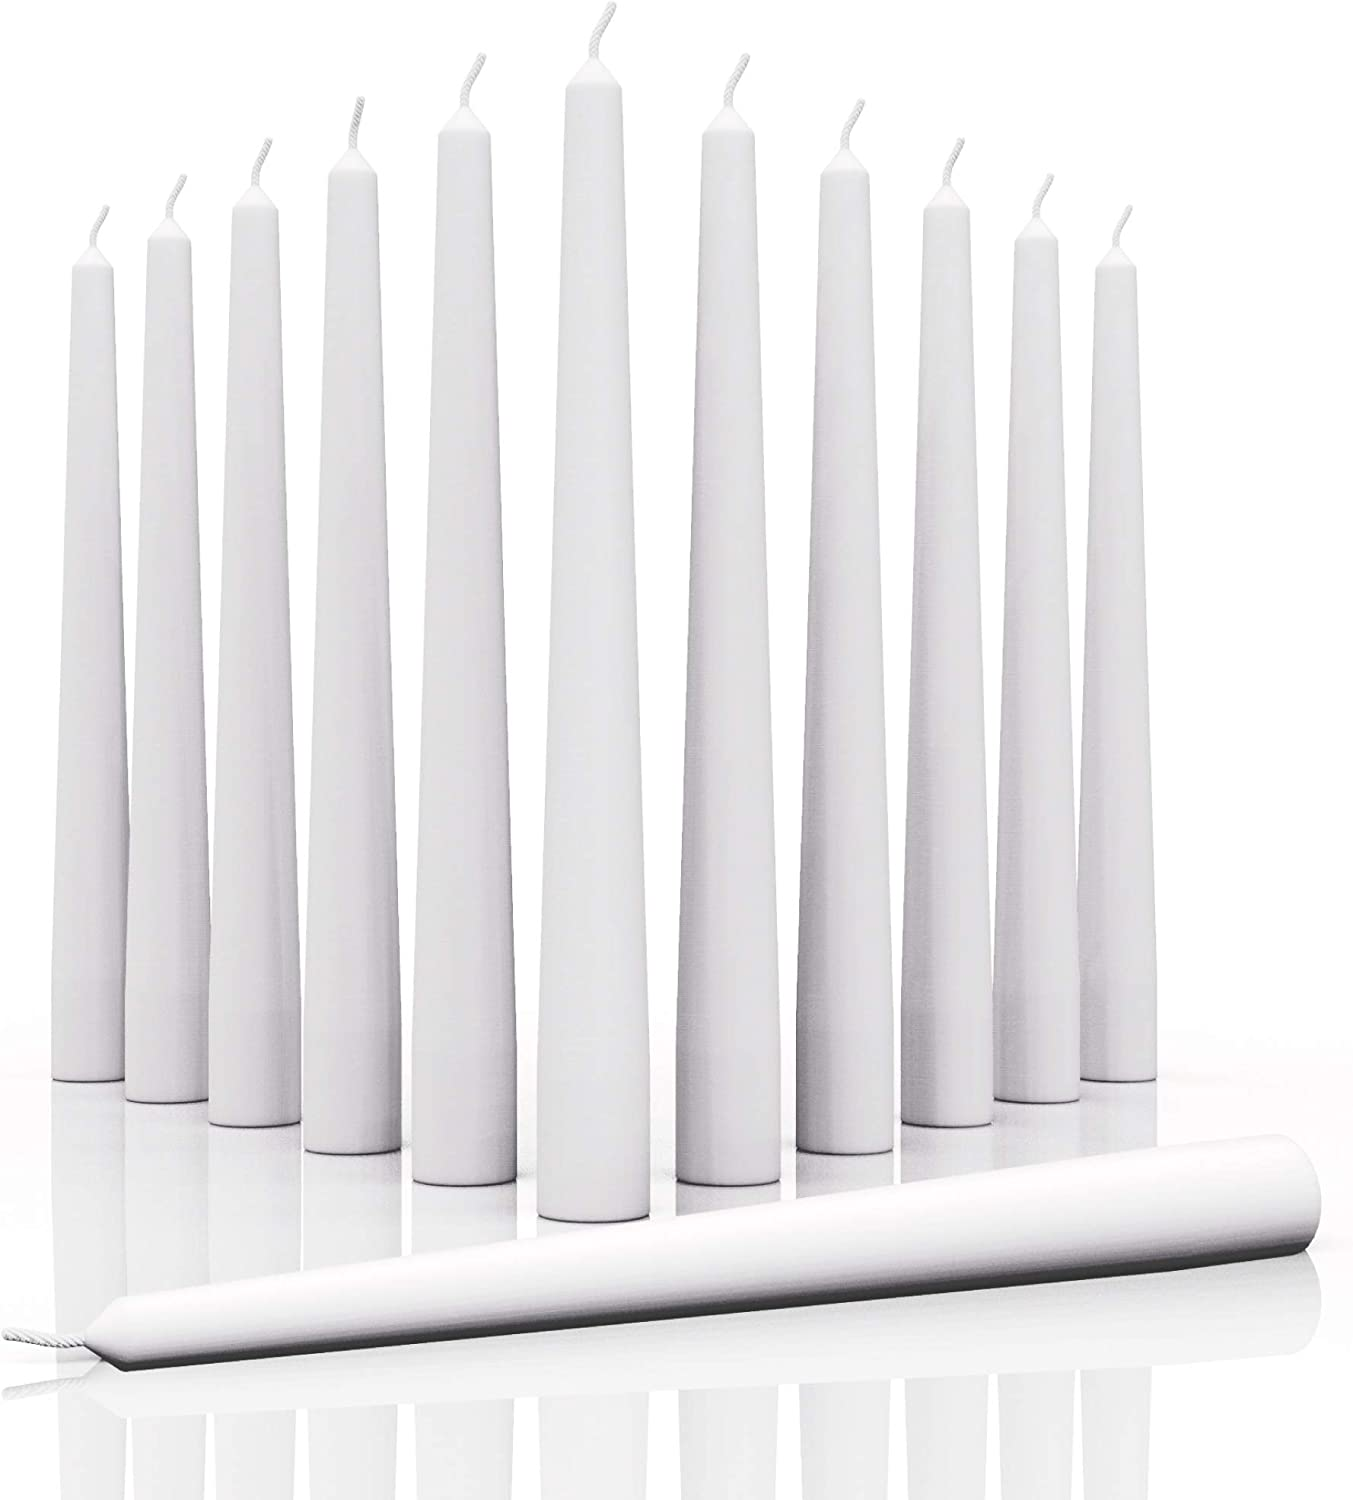 CANDWAX 12 inch Taper Candles Set of 12 - Dripless and Smokeless Candle Unscented - Slow Burning Candle Sticks are Perfect As Thanksgiving Taper Candles - White Candles